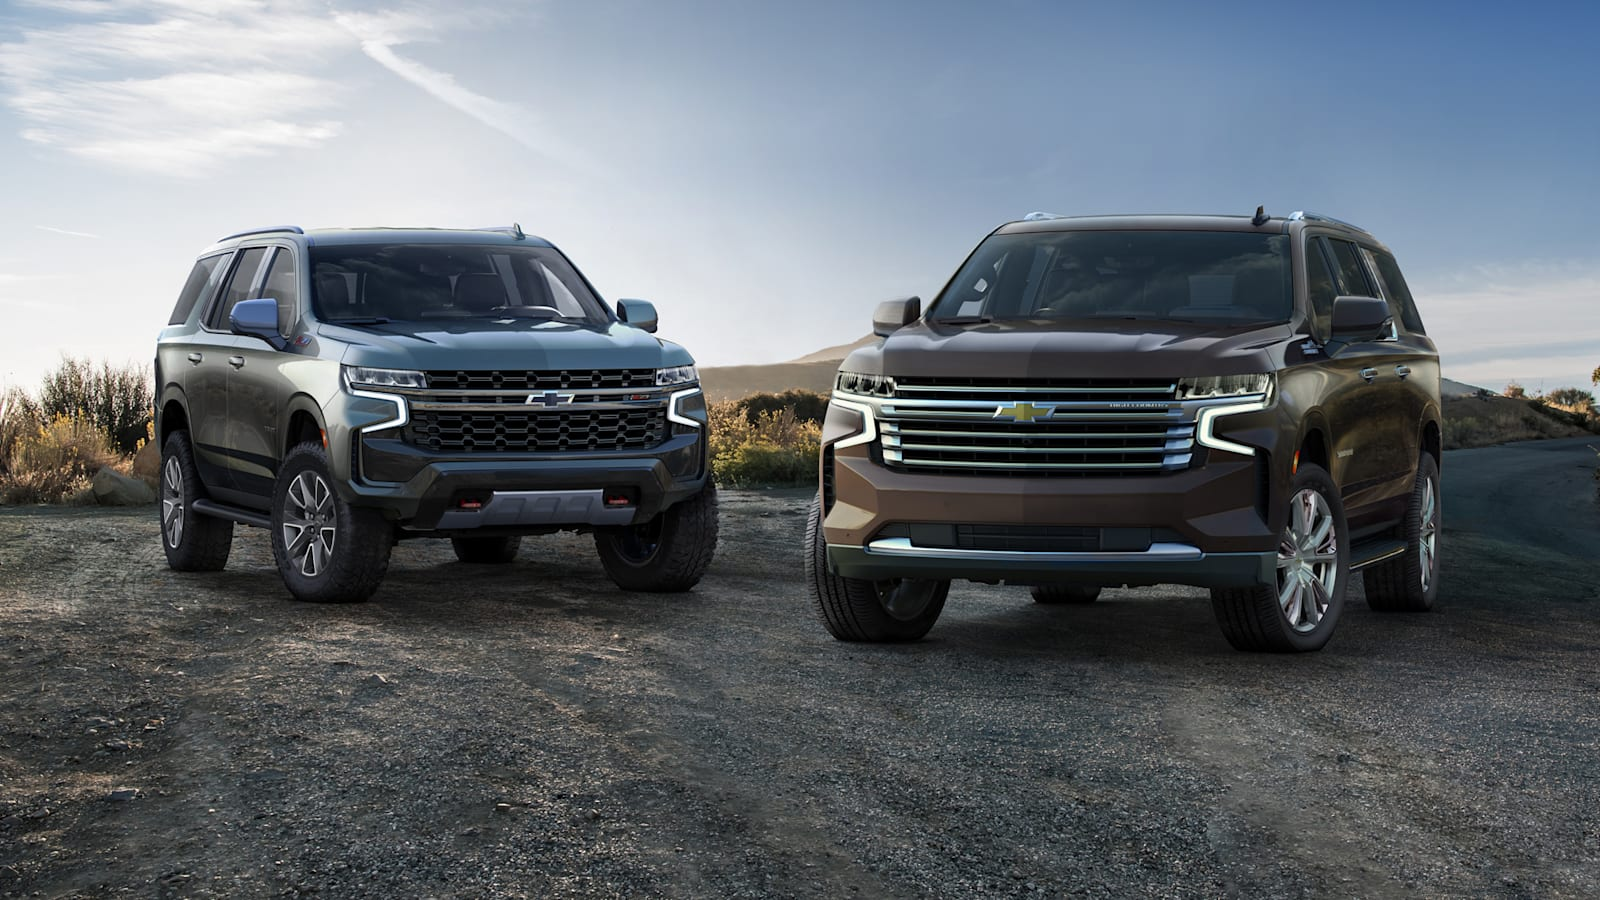 Chevrolet Suburban and Tahoe debut with new style